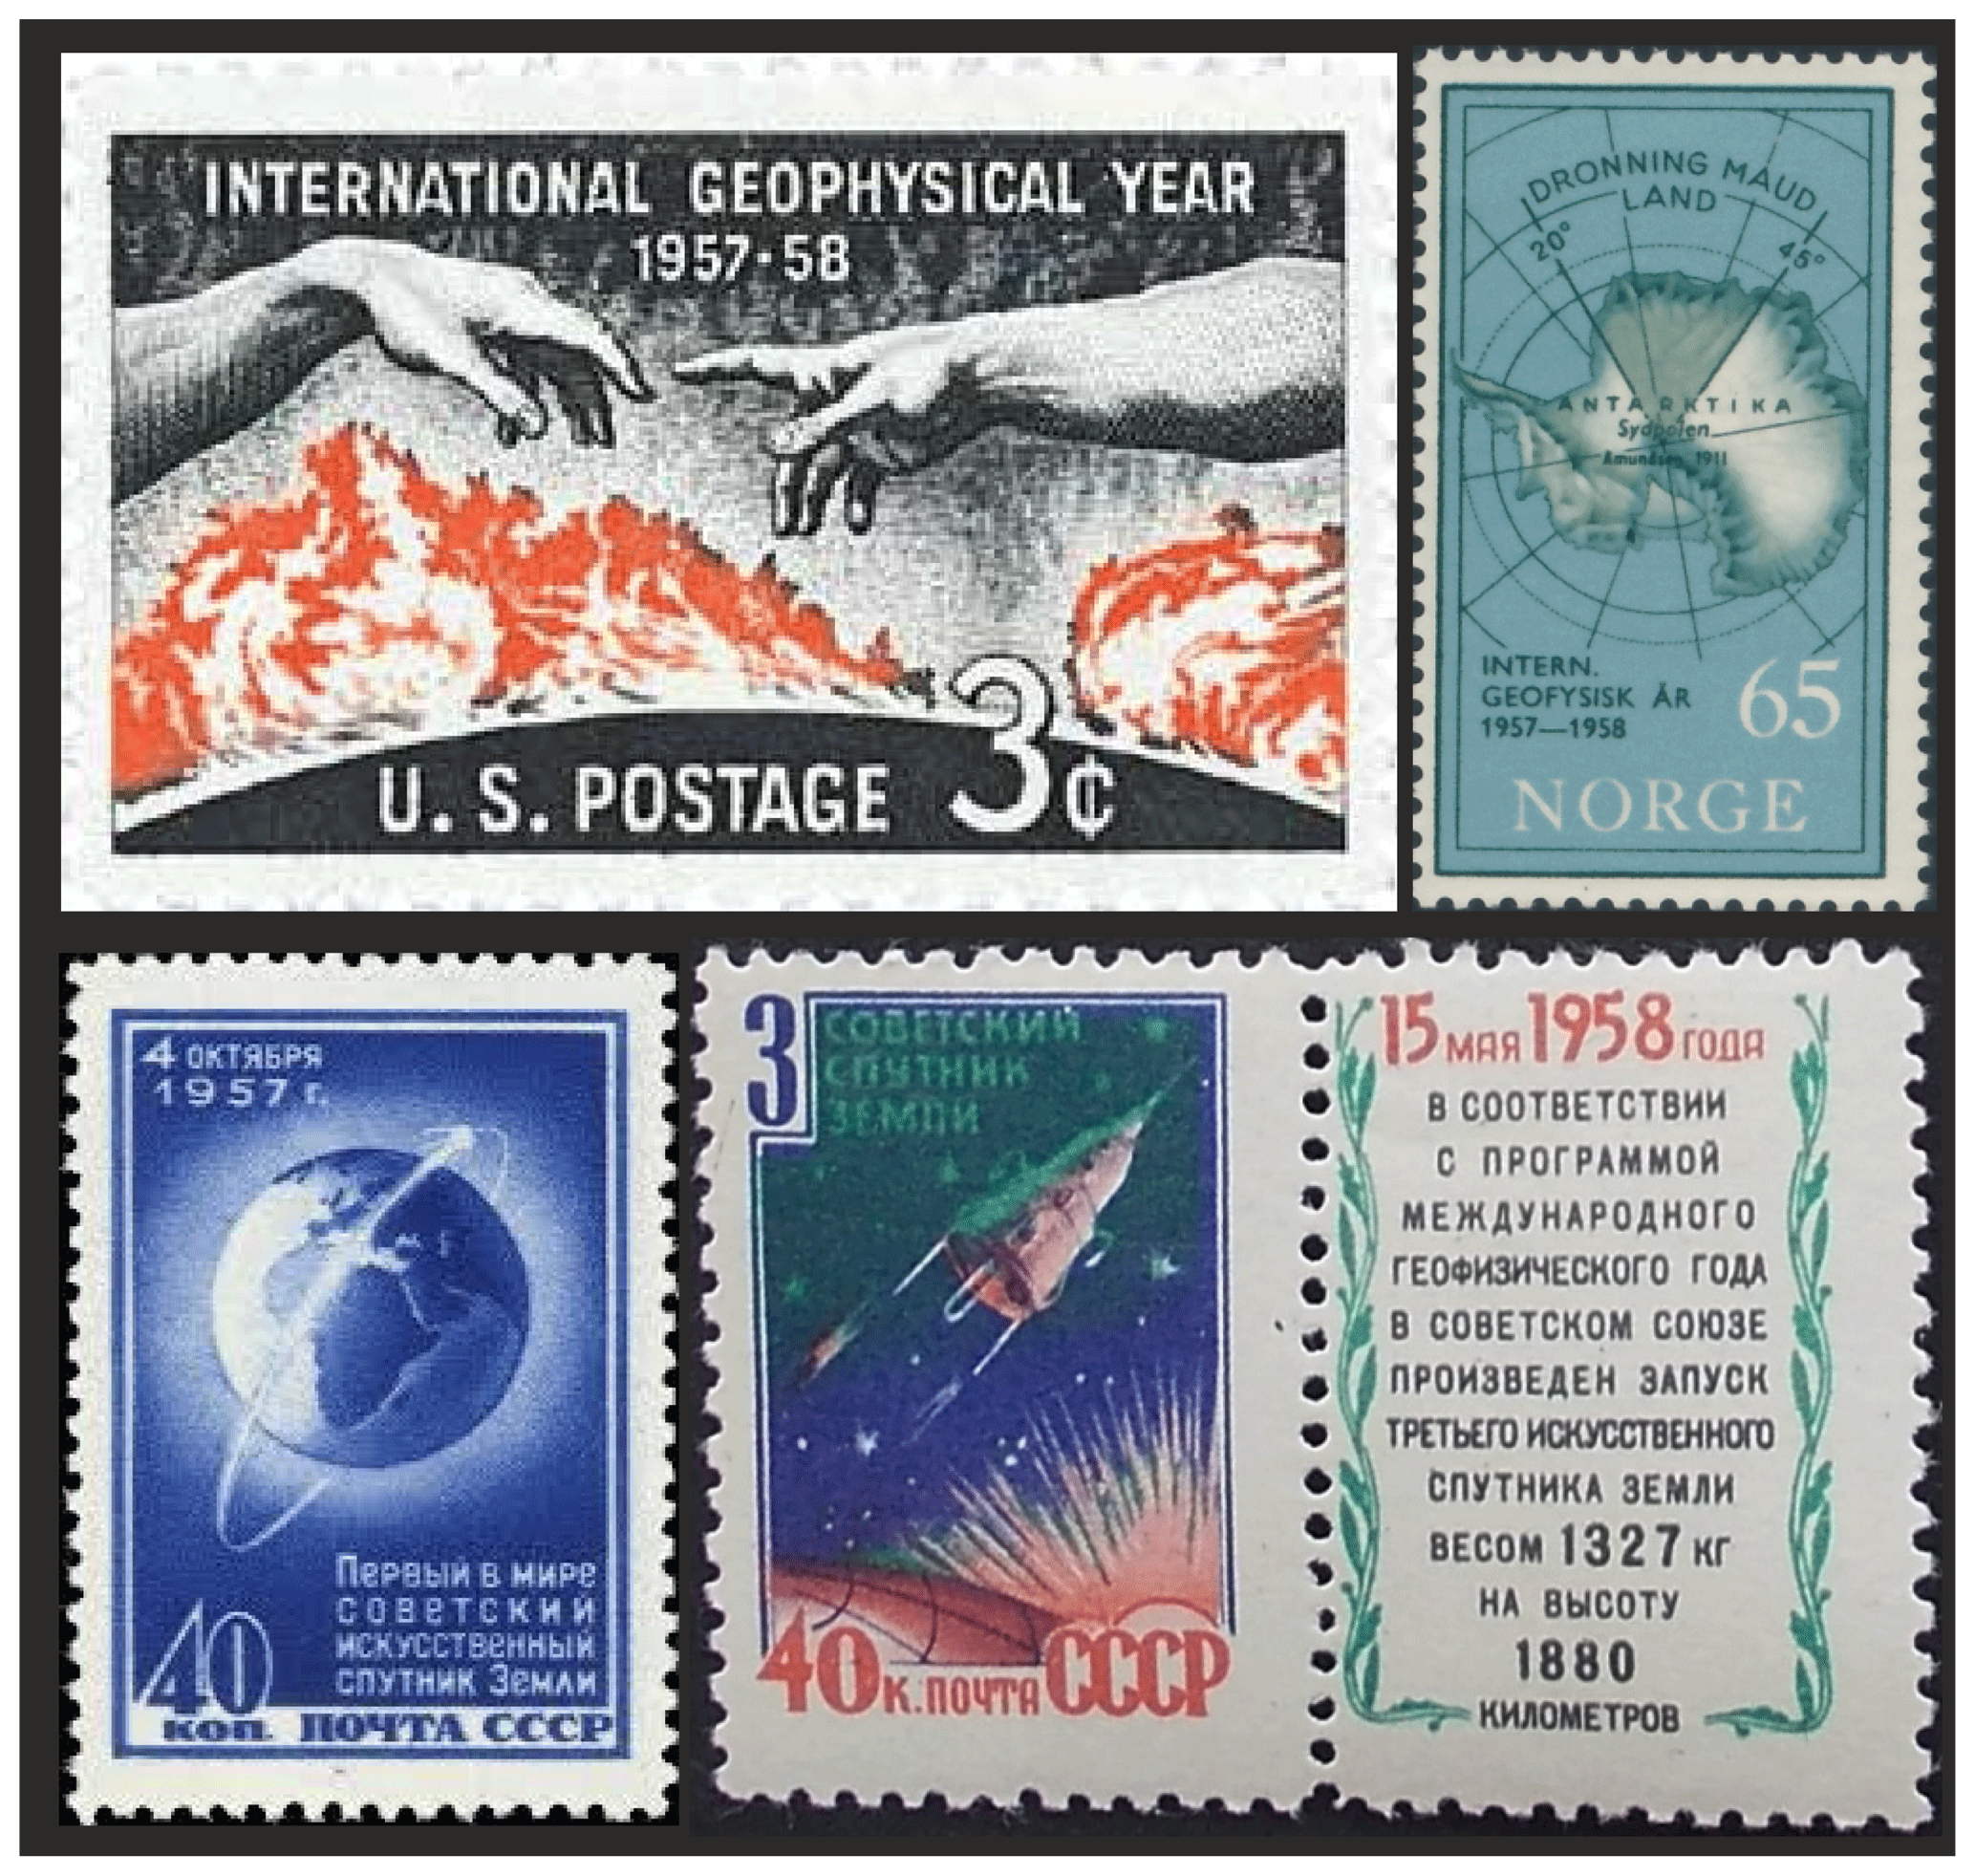 HGSS - IUGG evolves (1940–2000)